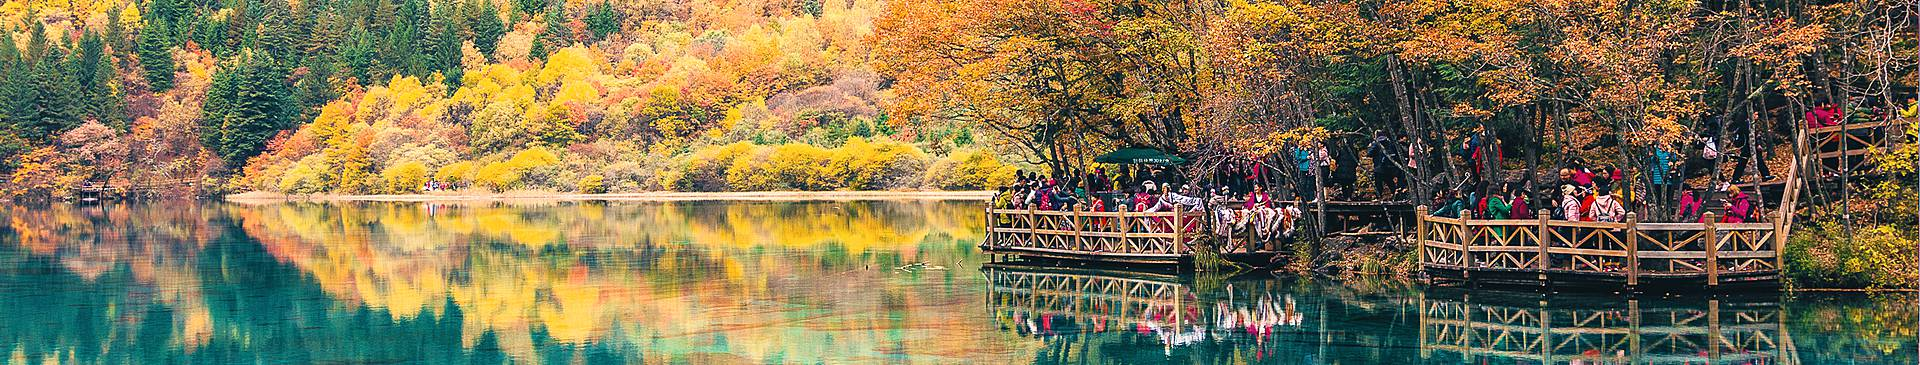 Autumn in China